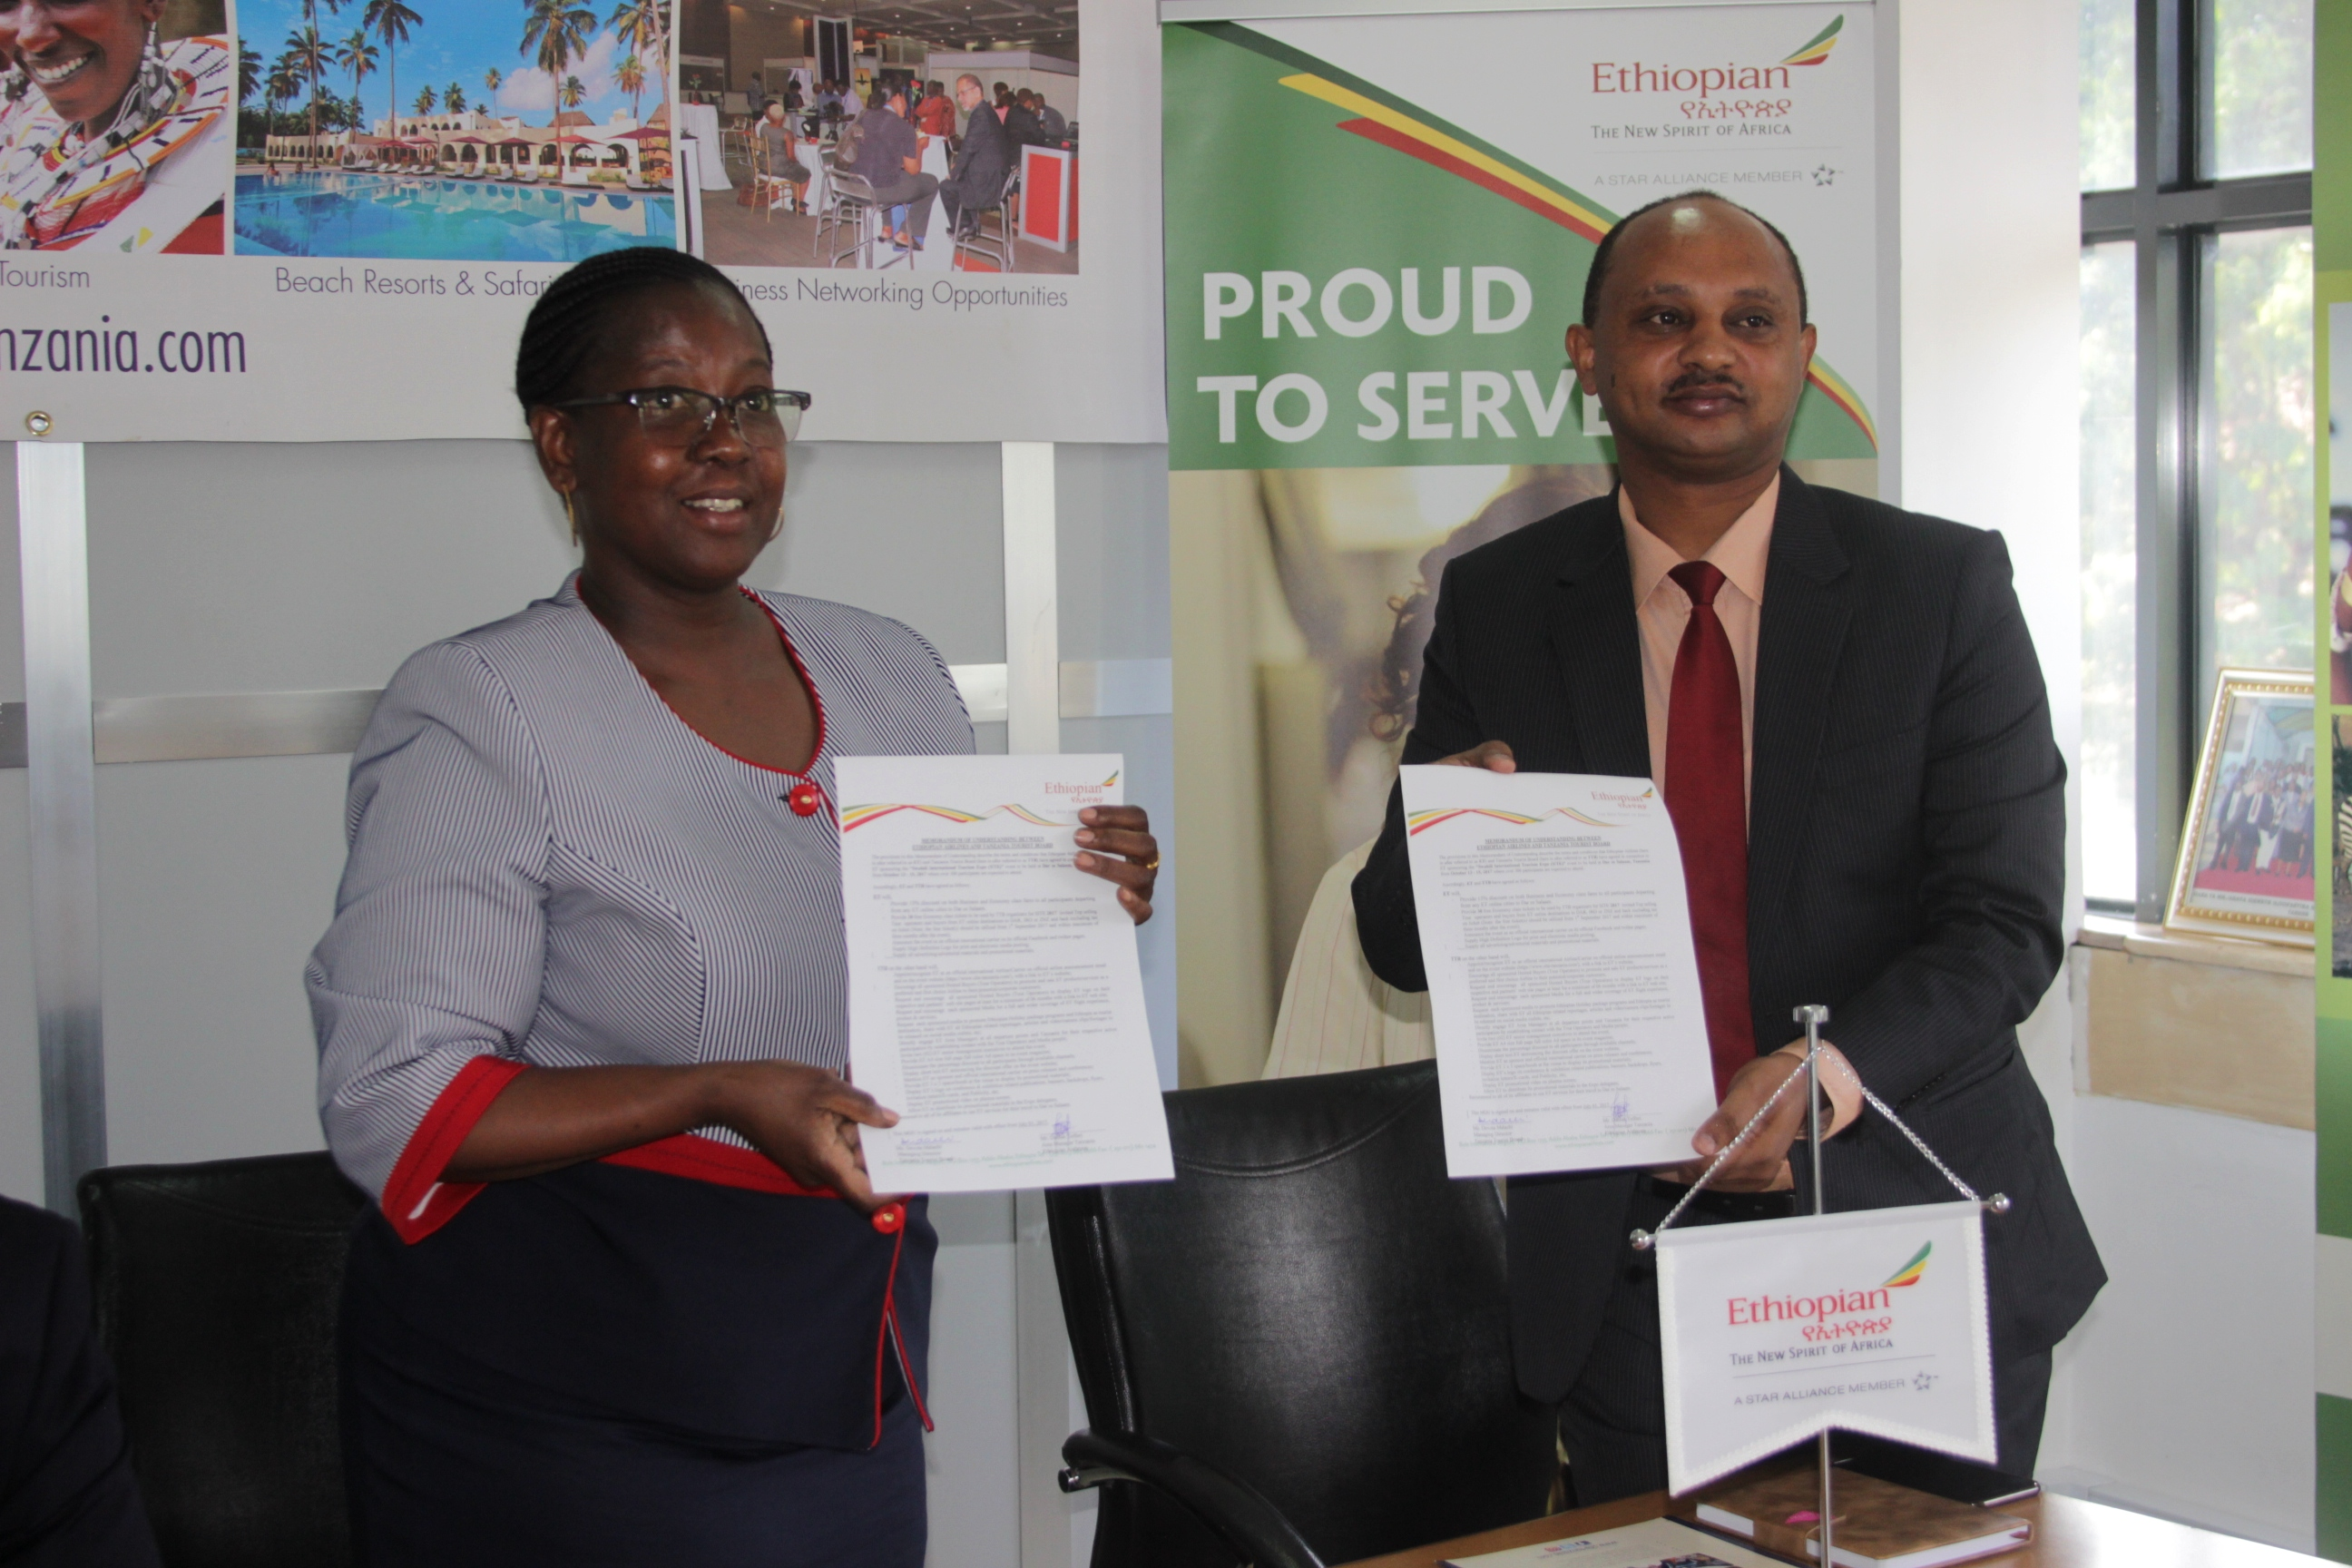 The TTB Managing Director, Ms Devota Mdachi (left) and Ethiopian Airlines Resident Manager, Mr Dahlak Teferi (right), display copies of the cooperation protocol they signed on August 21, 2017 in Dar es Salaam.  The two institutions pledged to organise successfully the coming SITE 2017 to be stated at Julius Nyerere International Convention Centre in Dar es Salaam. (Picture by Staff Photographer Isdory Njavike)